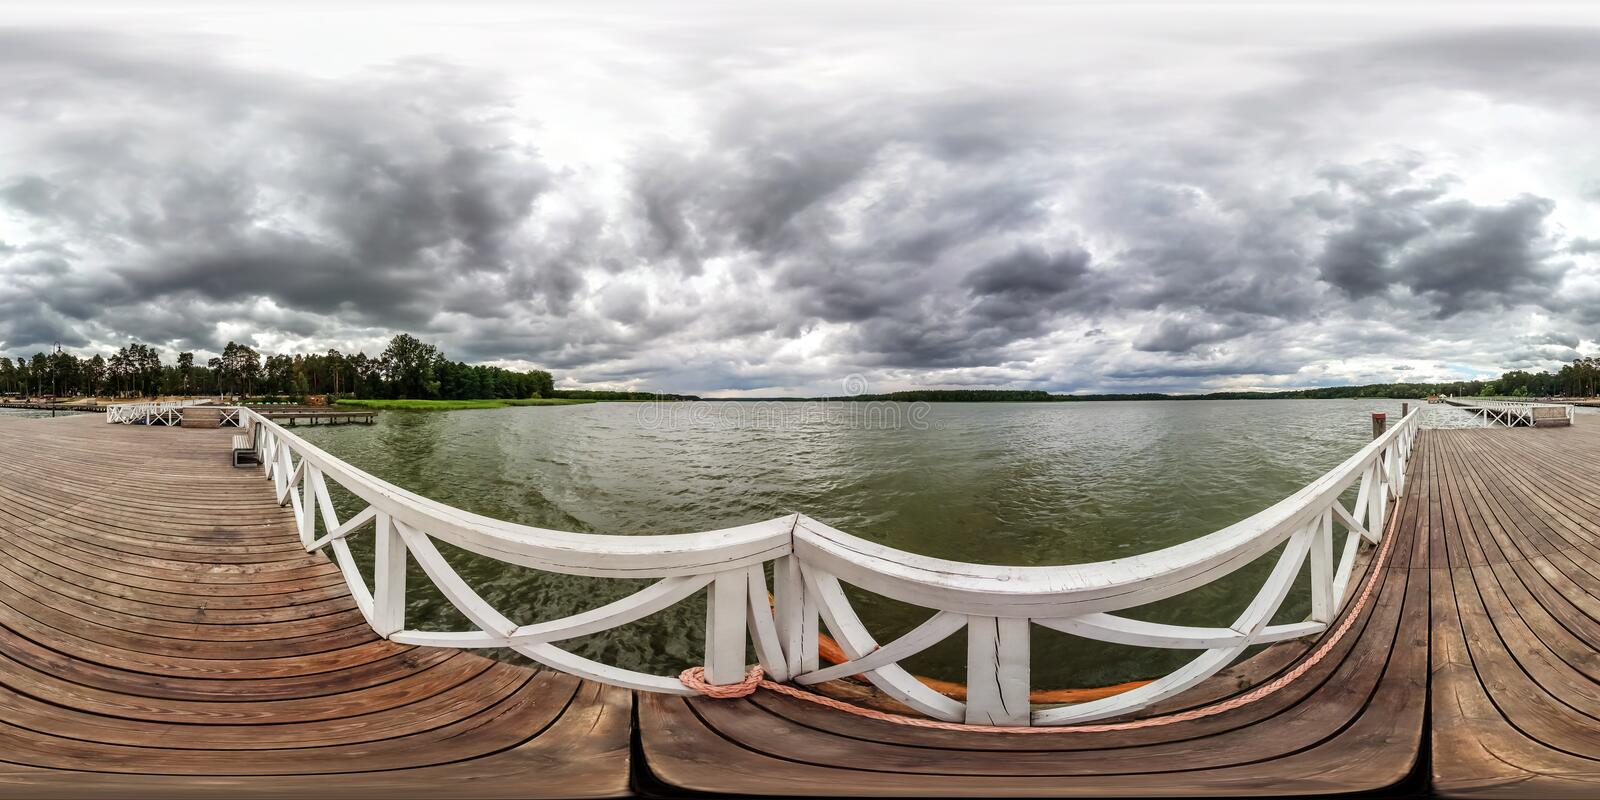 Full seamless spherical hdri panorama 360 degrees  angle view on wooden pier for ships on huge lake in gray rain sky in royalty free stock images